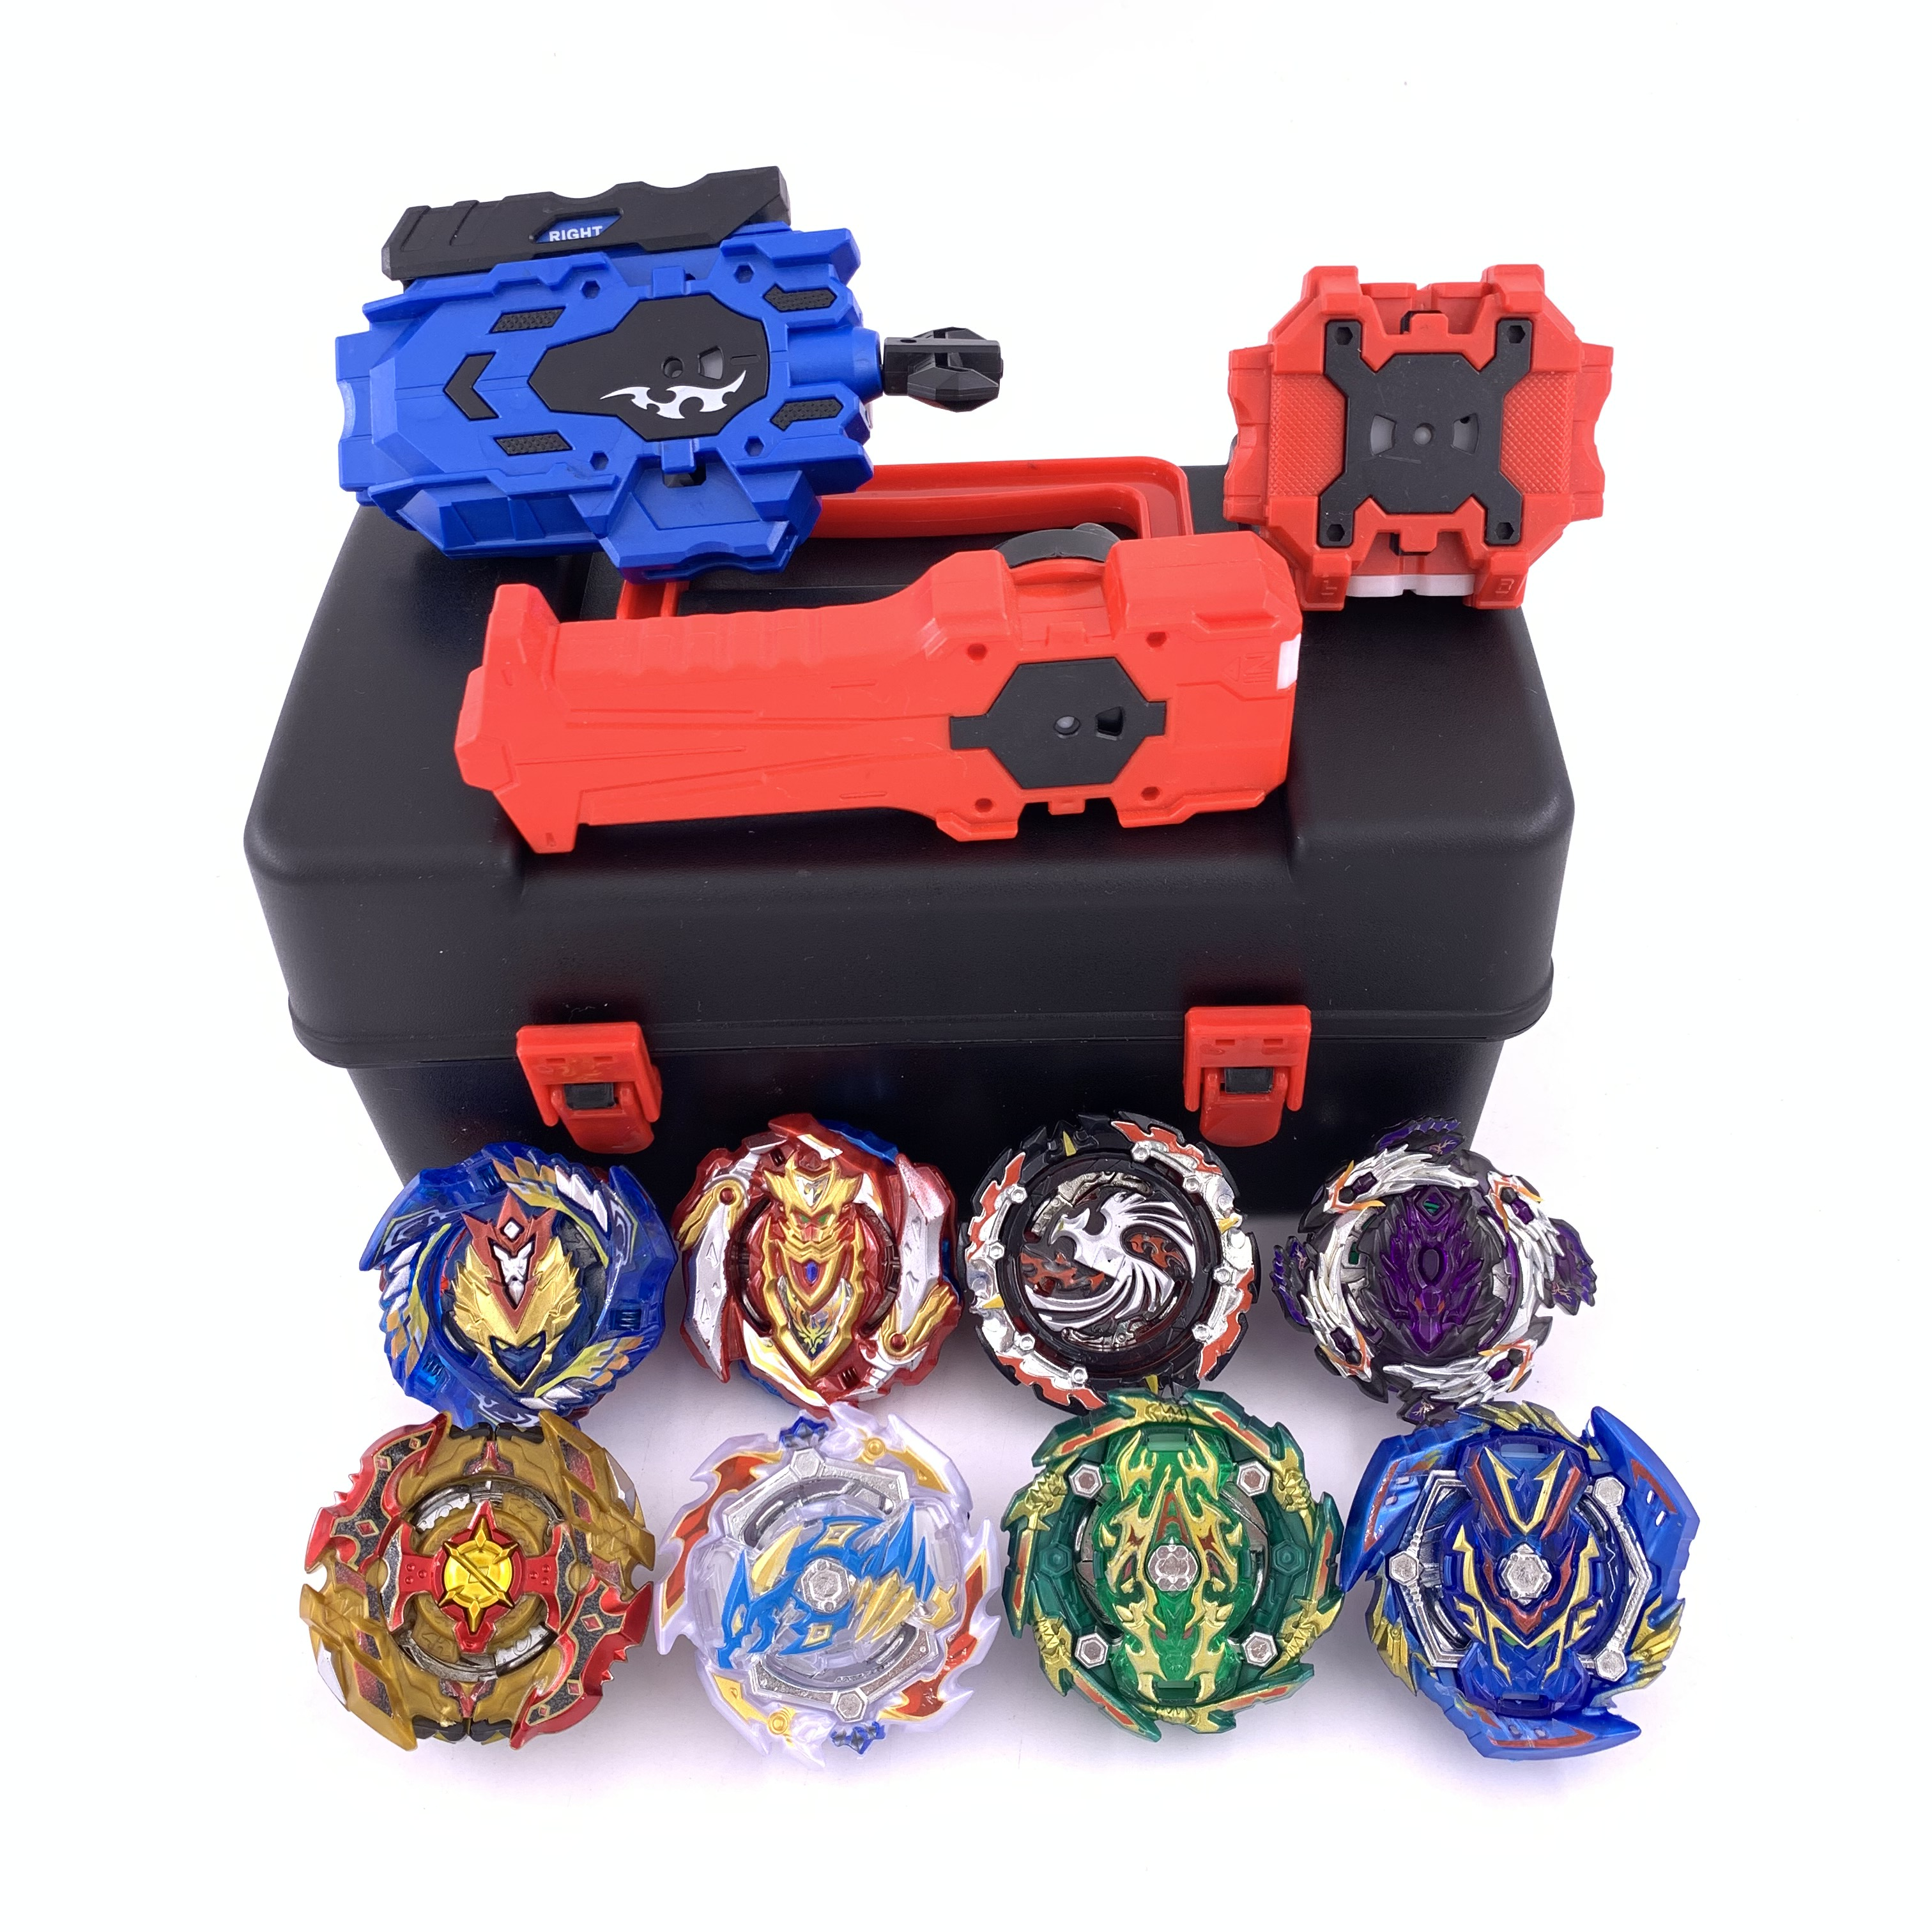 Top Beyblade Burst Bey Blade Toy Metal Funsion Bayblade Set Storage Box With Handle Launcher Plastic Box Toys For Children